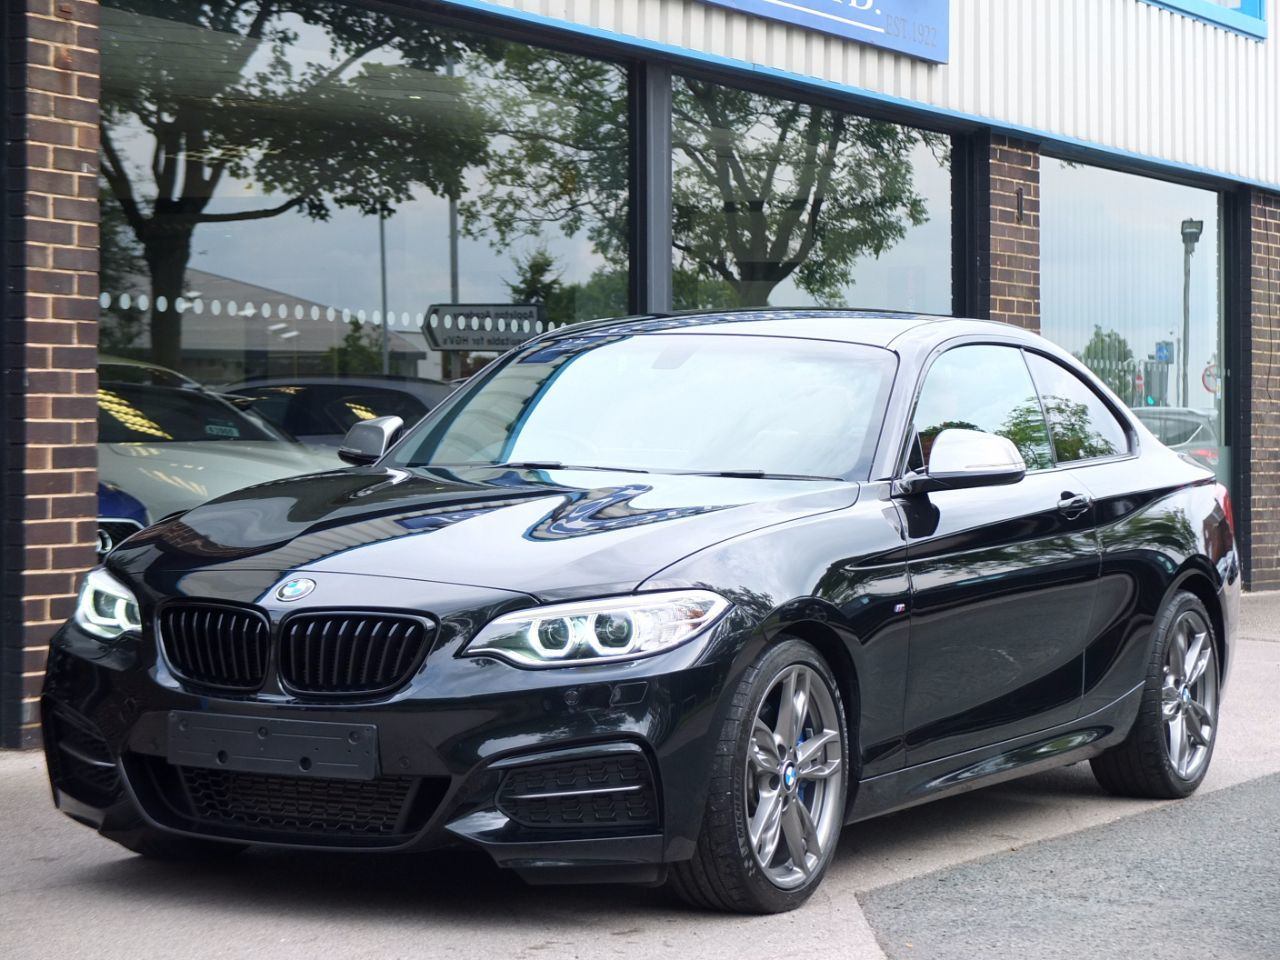 BMW 2 Series 3.0 M235i Auto Coupe Petrol Black Sapphire MetallicBMW 2 Series 3.0 M235i Auto Coupe Petrol Black Sapphire Metallic at fa Roper Ltd Bradford